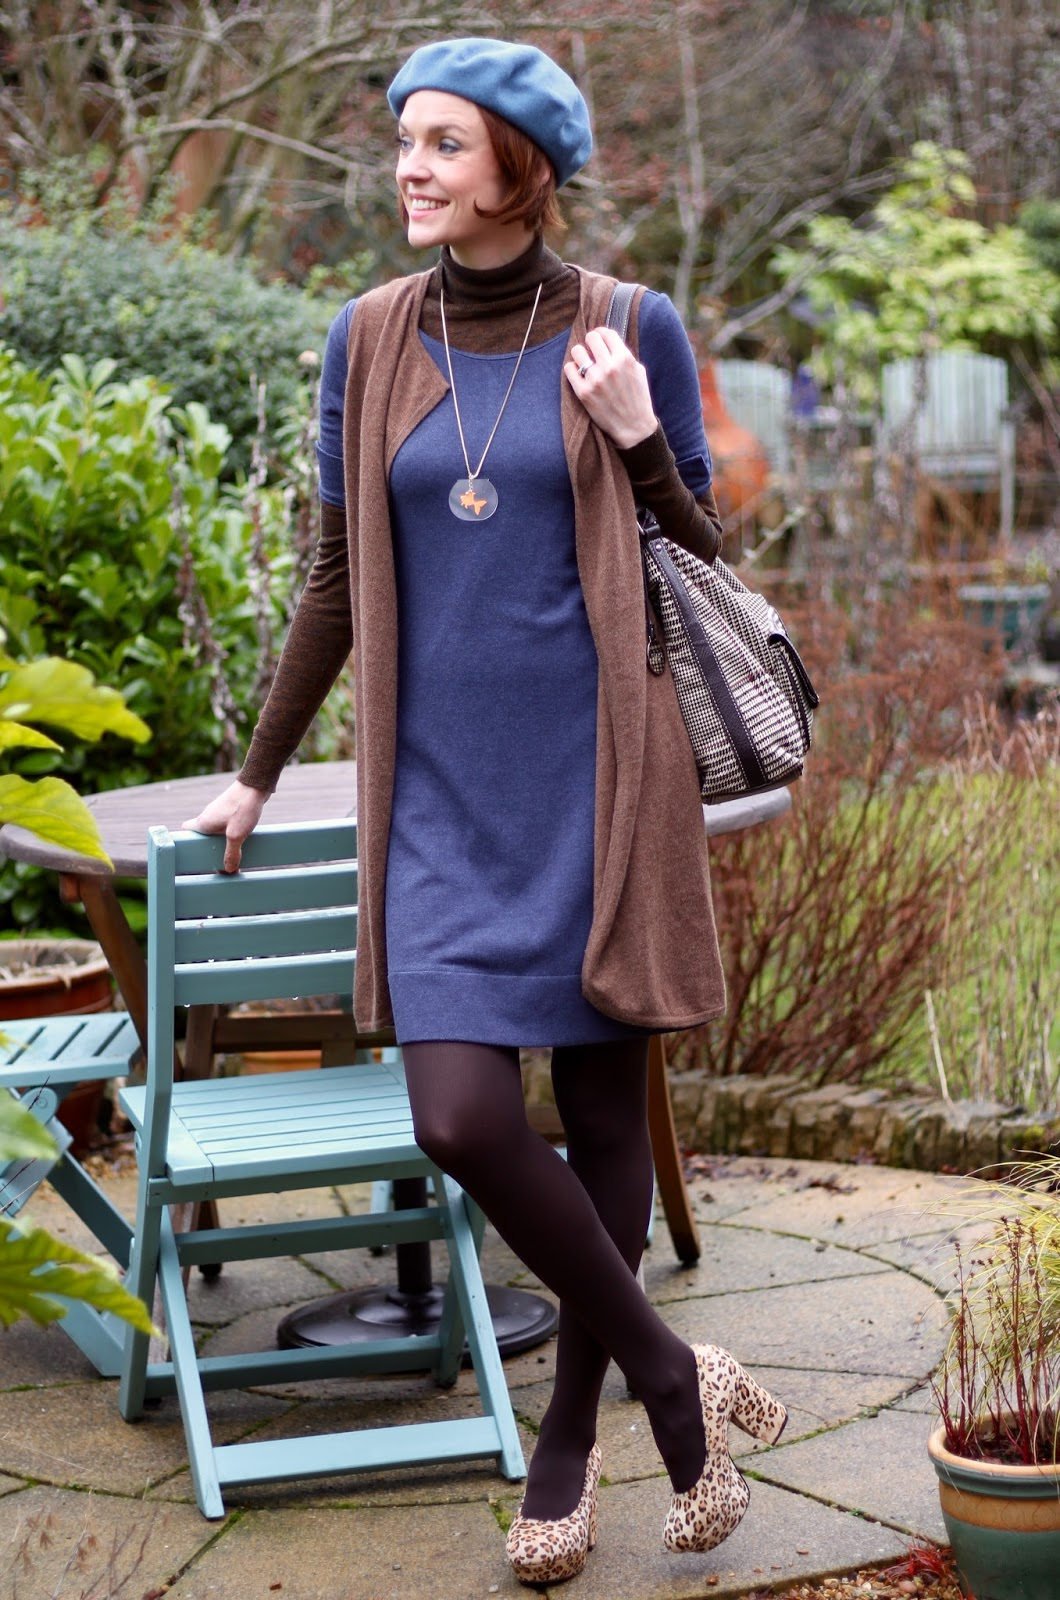 Cosy cashmere waistcoat | Layered dresses | |Leopard shoes and a beret